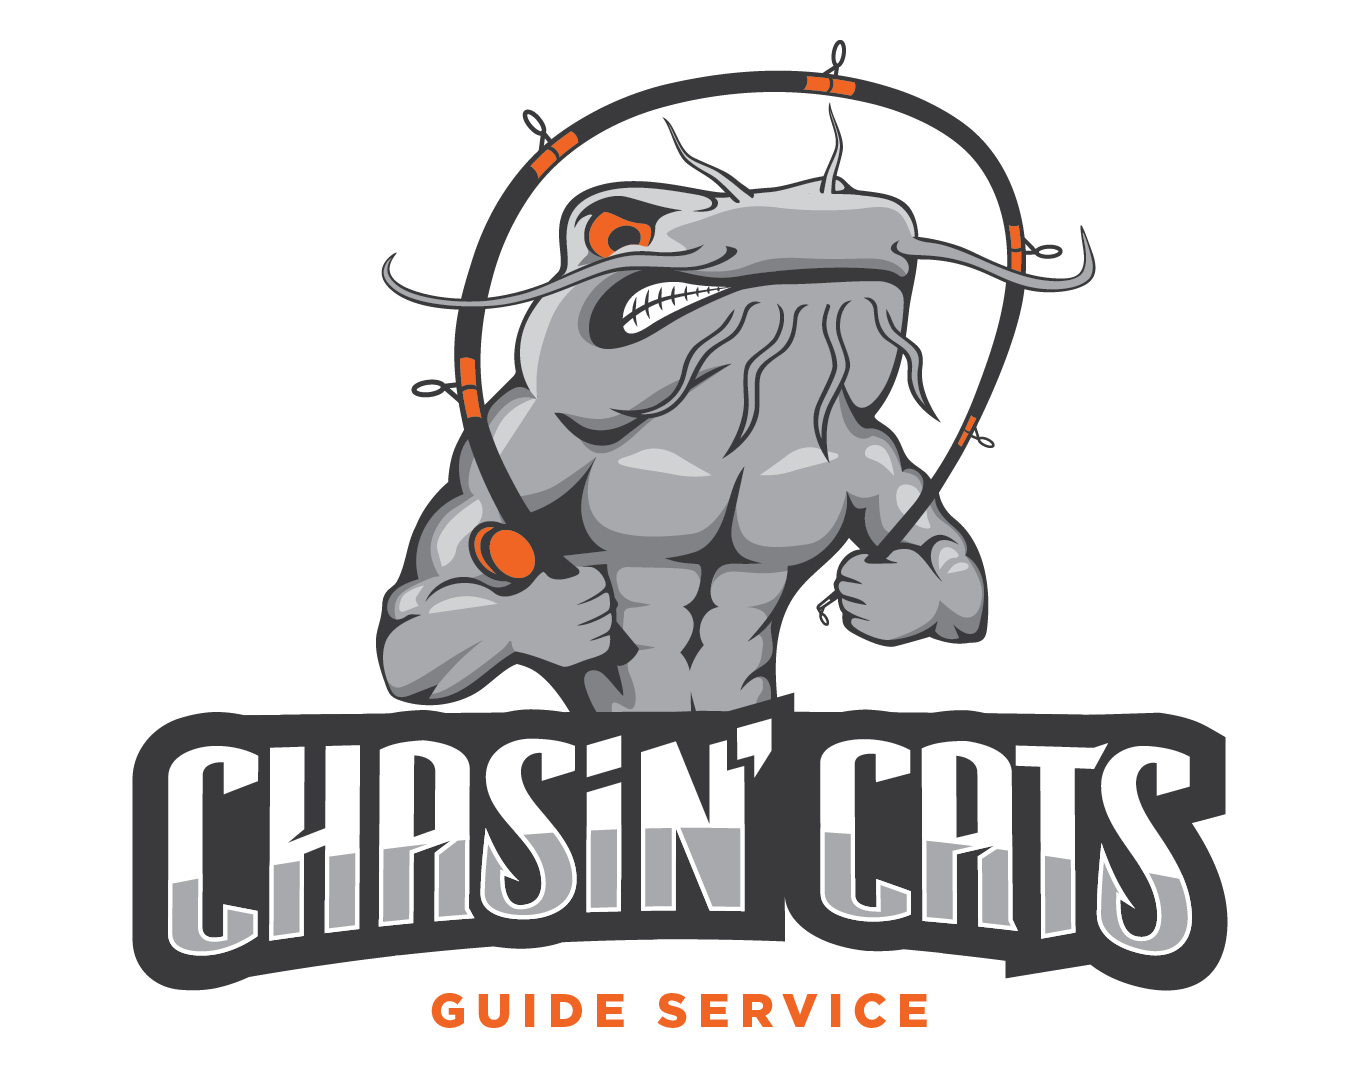 Chasin' Cats - Iowa Catfishing Guide